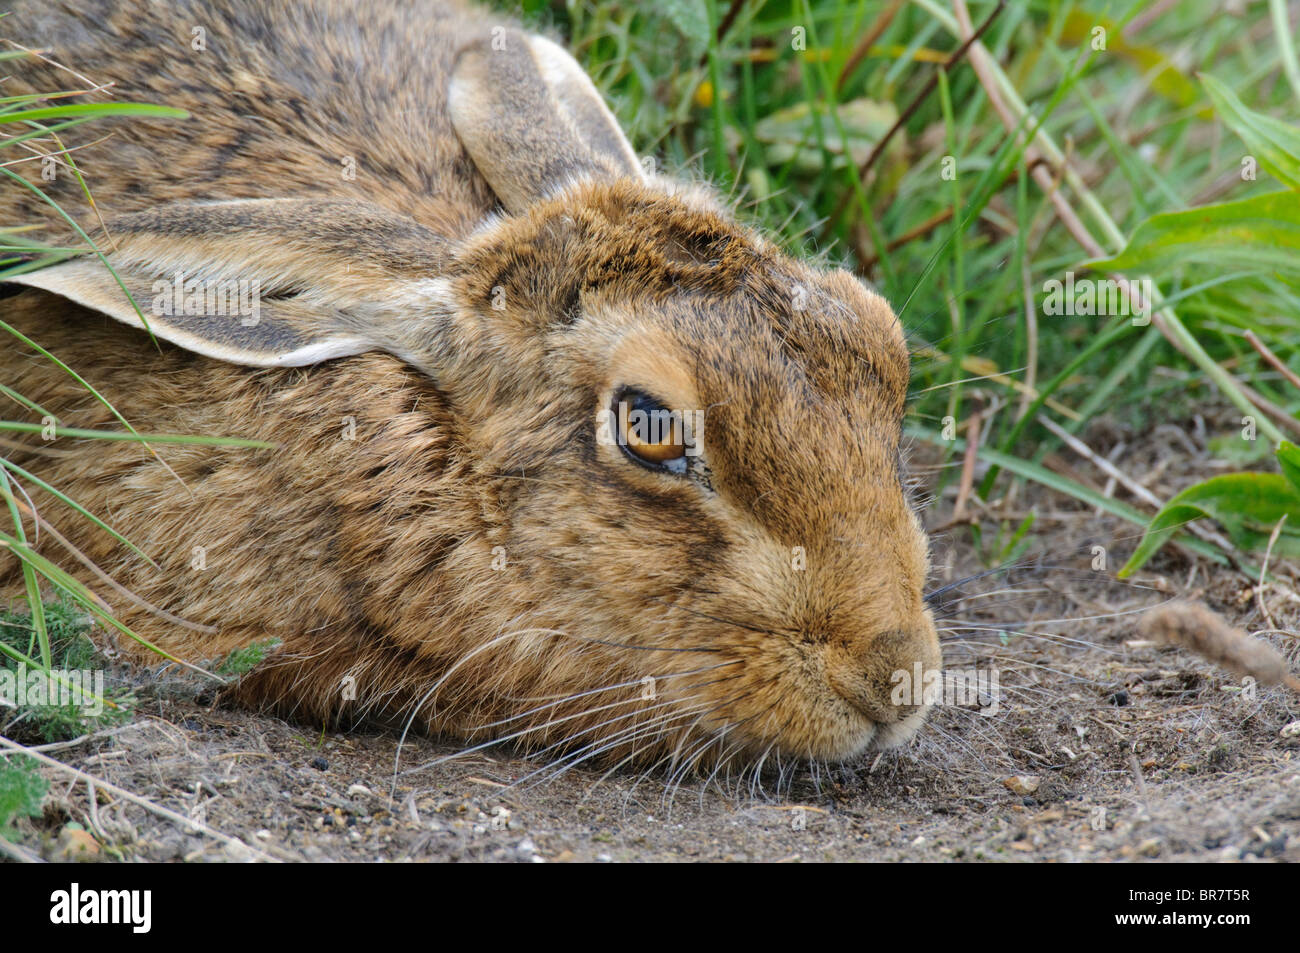 Brown Hare (Lepus europaeus) hiding amongst vegetation on disused airfield runway. - Stock Image